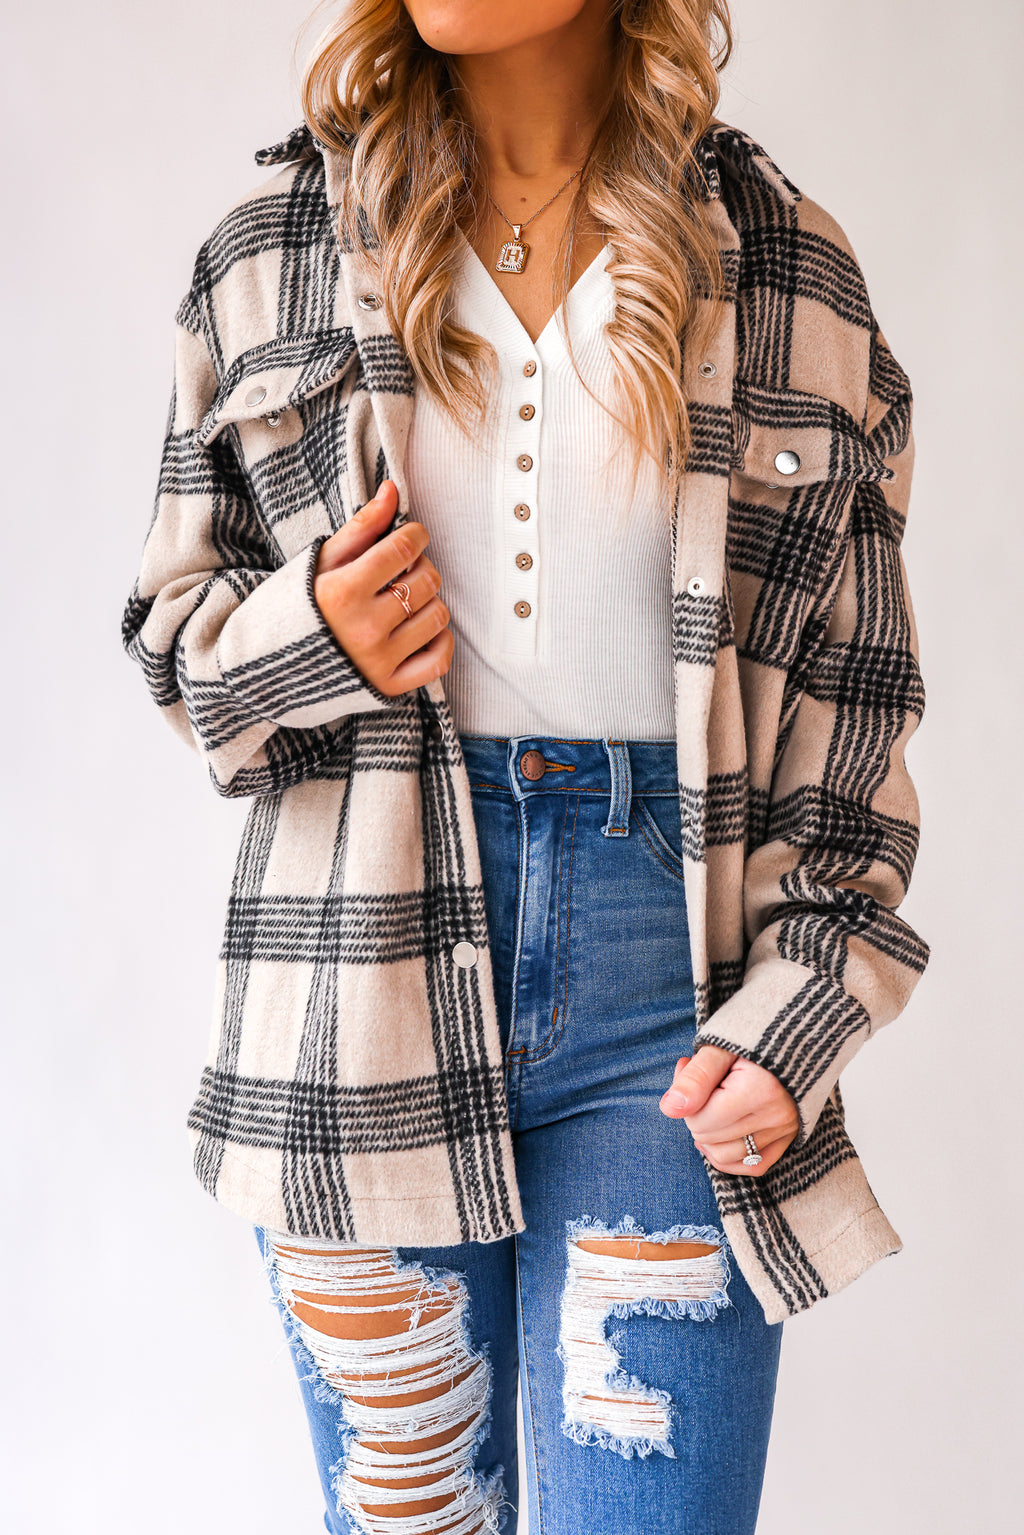 With Love Plaid Shacket (Tan)